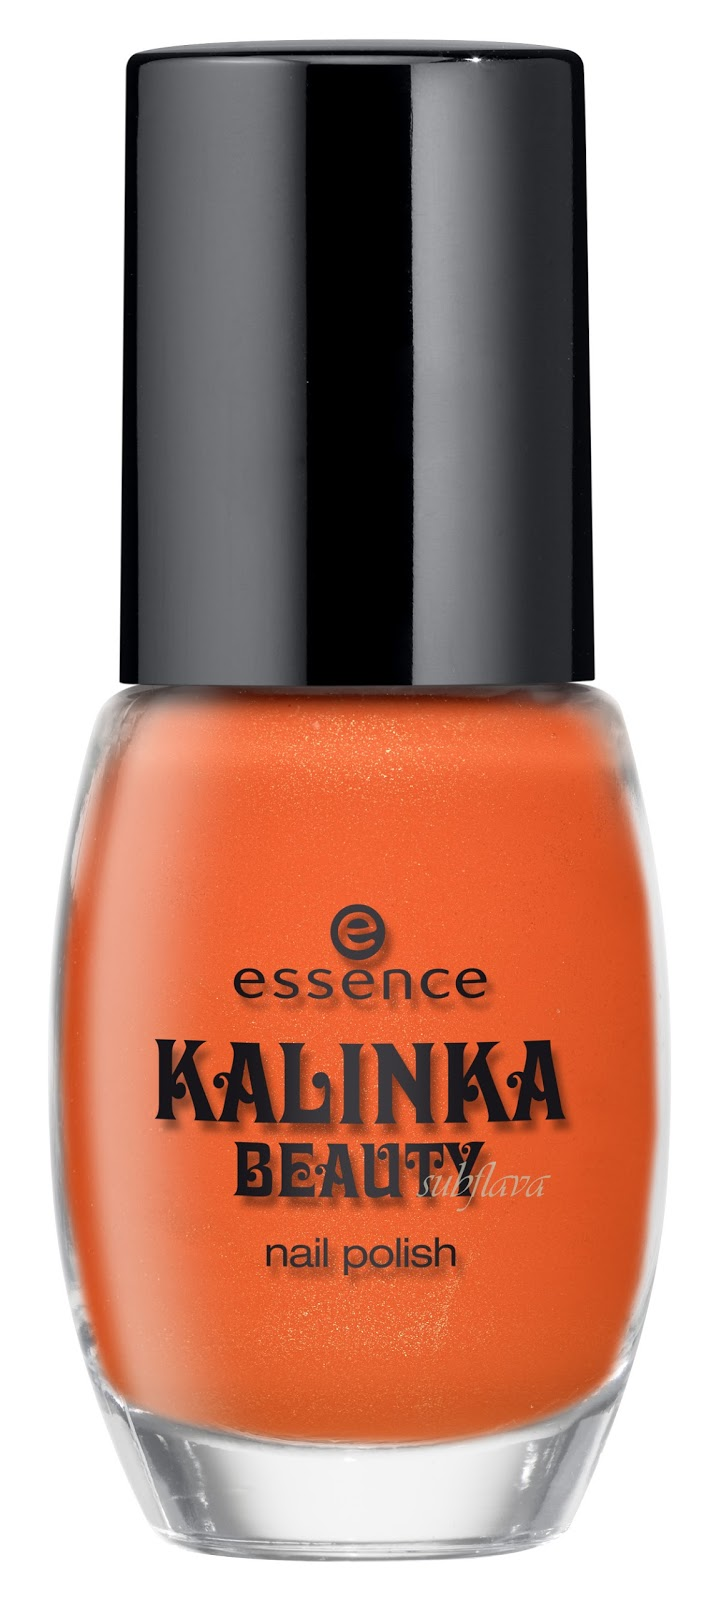 kalinka-beauty-essence